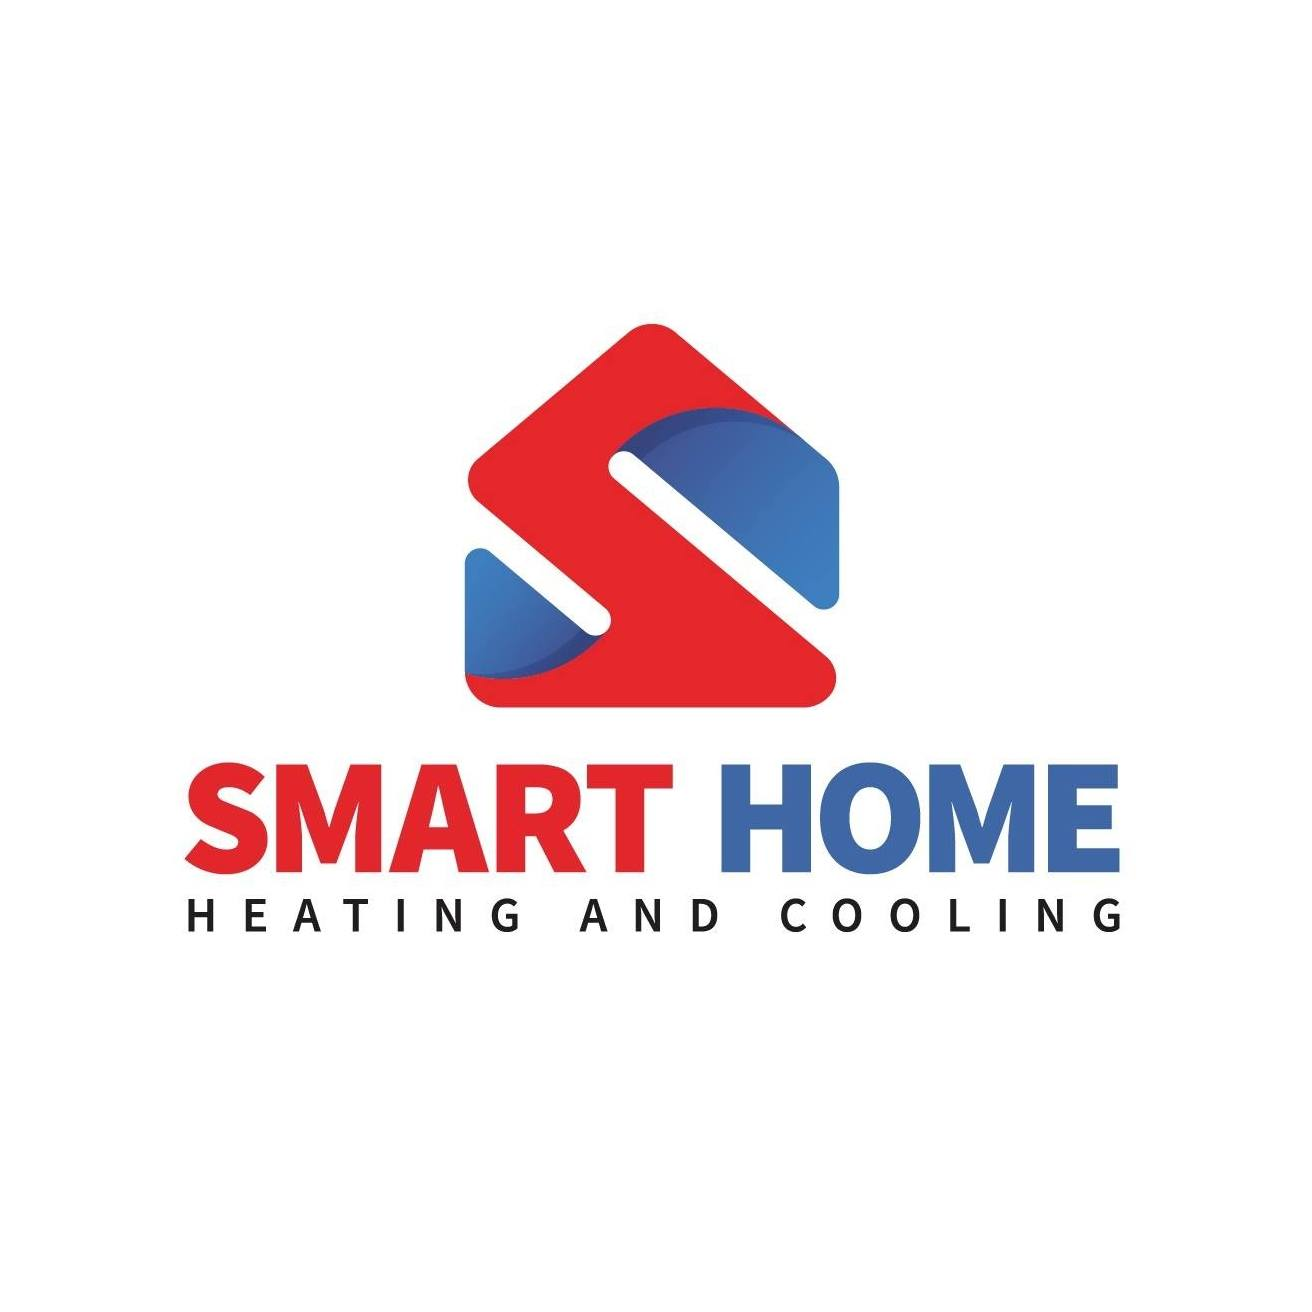 Smart Home Heating and Cooling Now Offering Rapid Response for Furnace Repair in Buffalo, NY